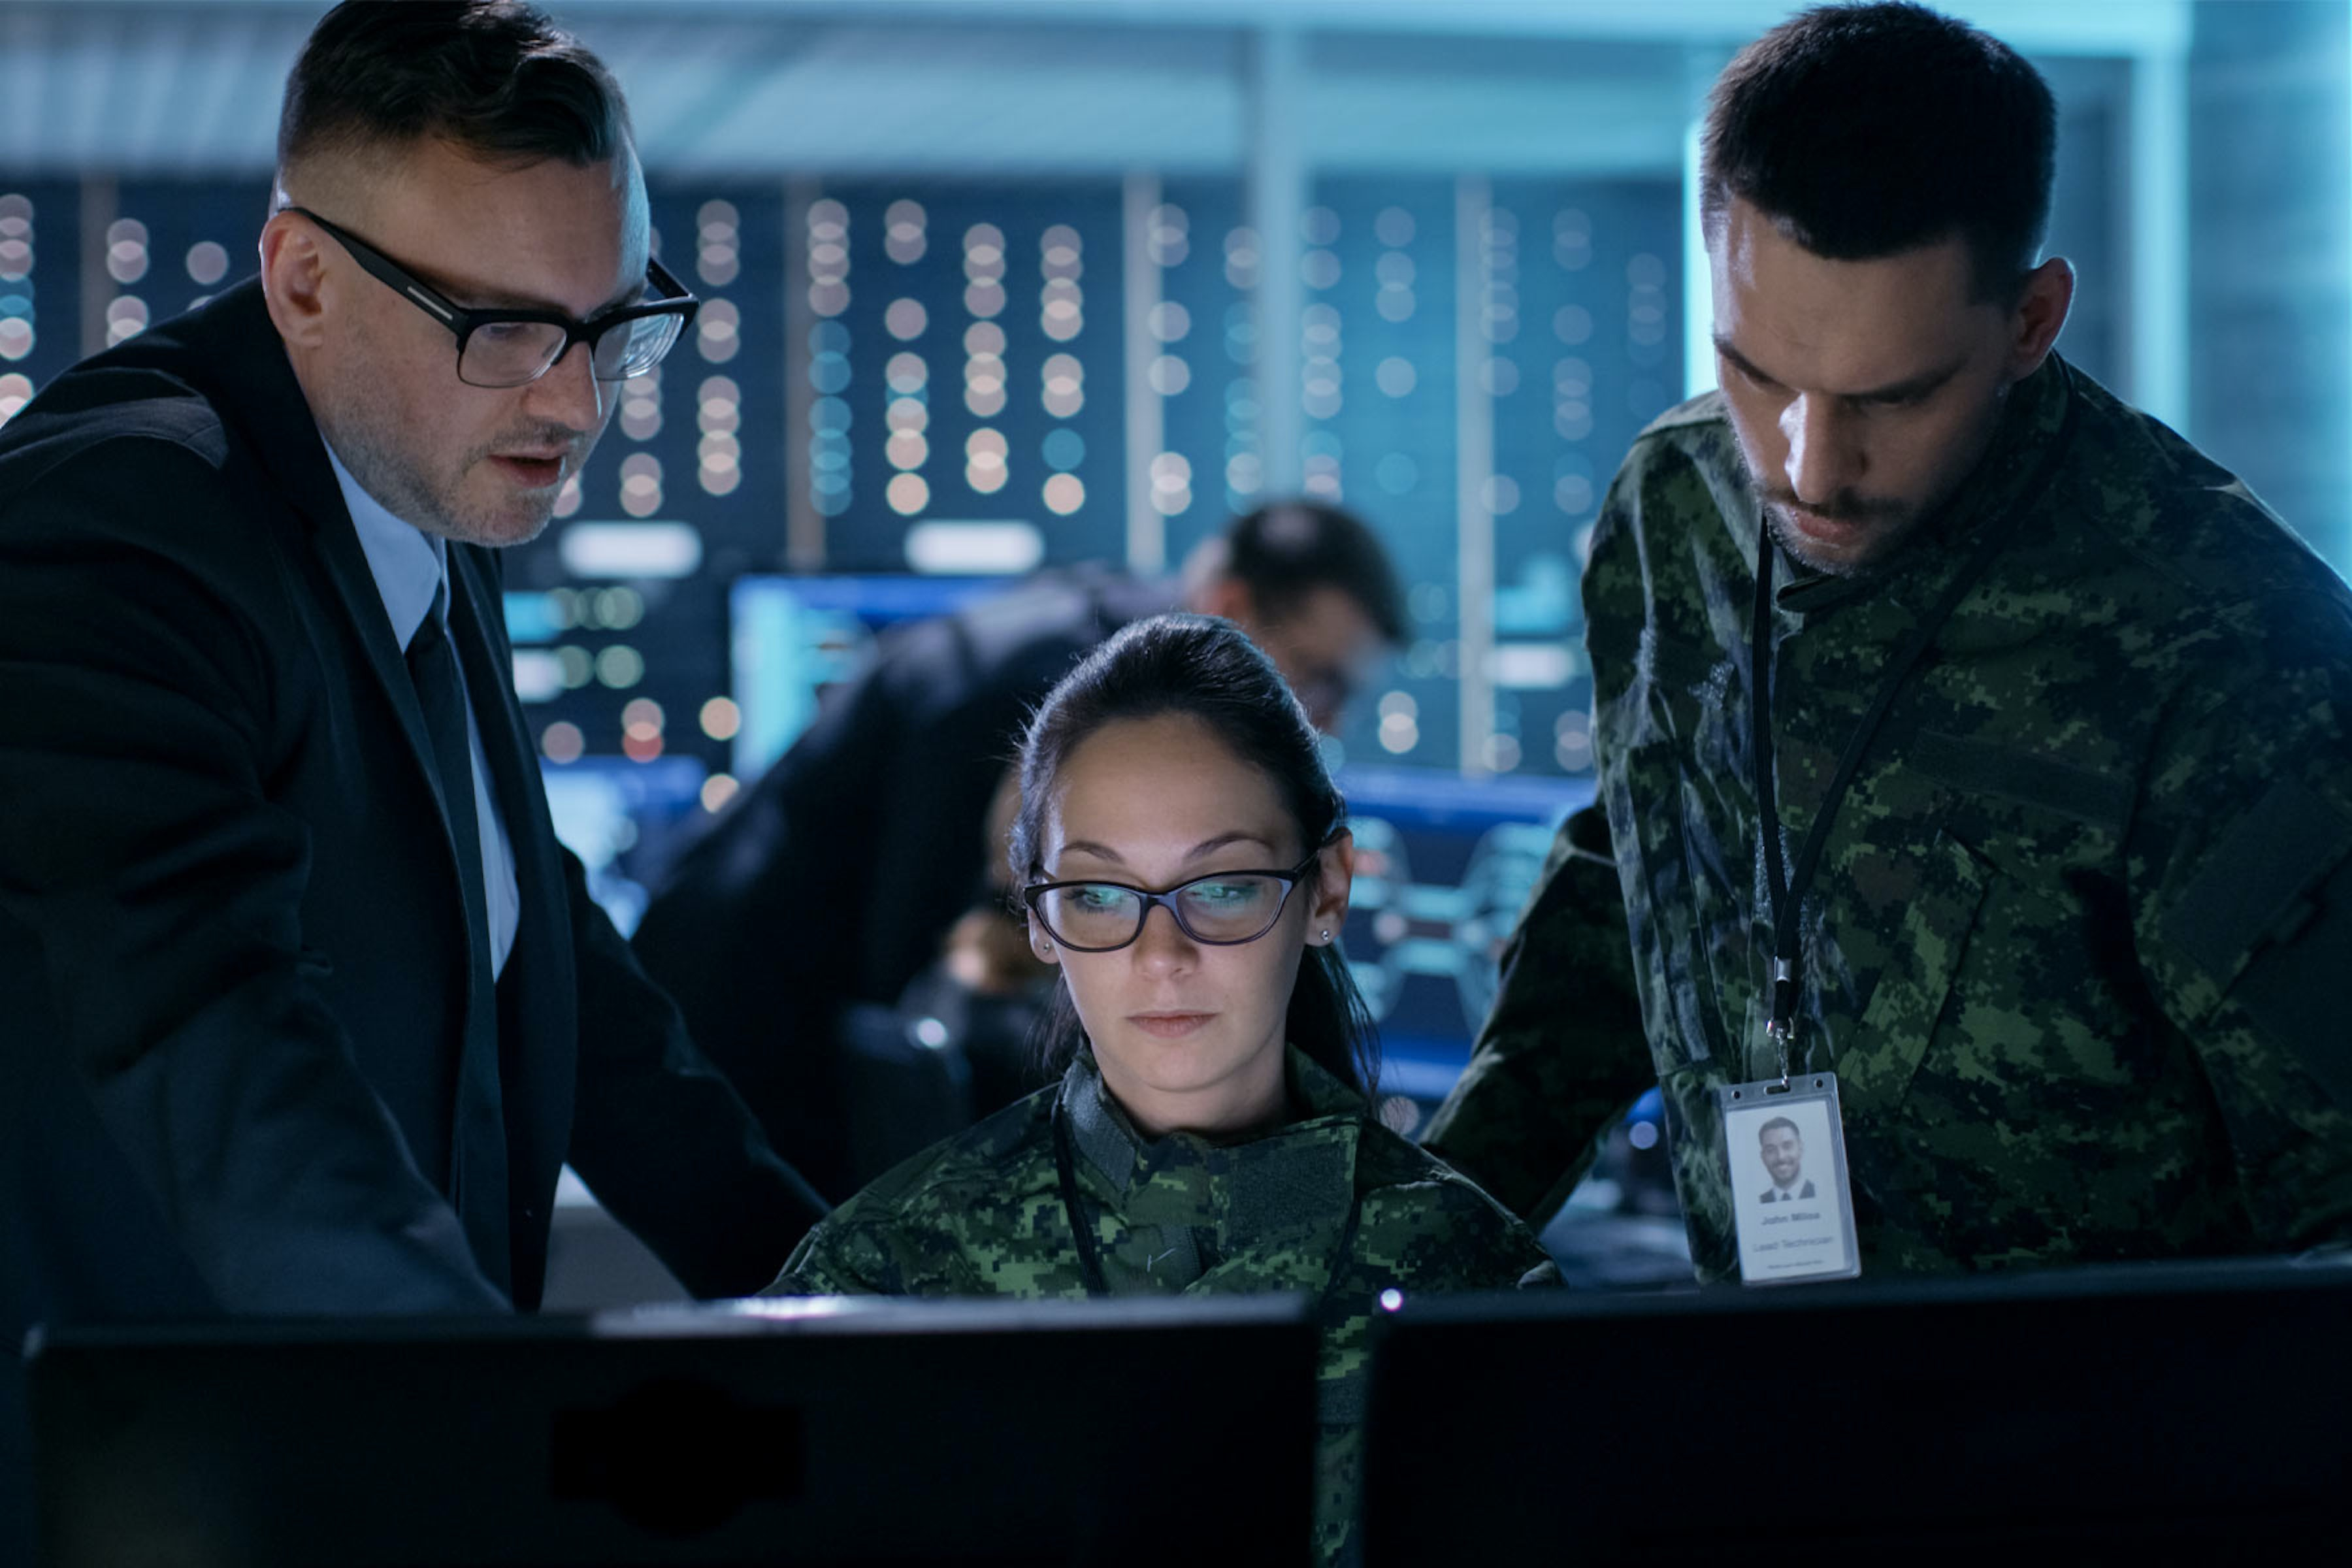 three soldiers looking at computer screens and talking